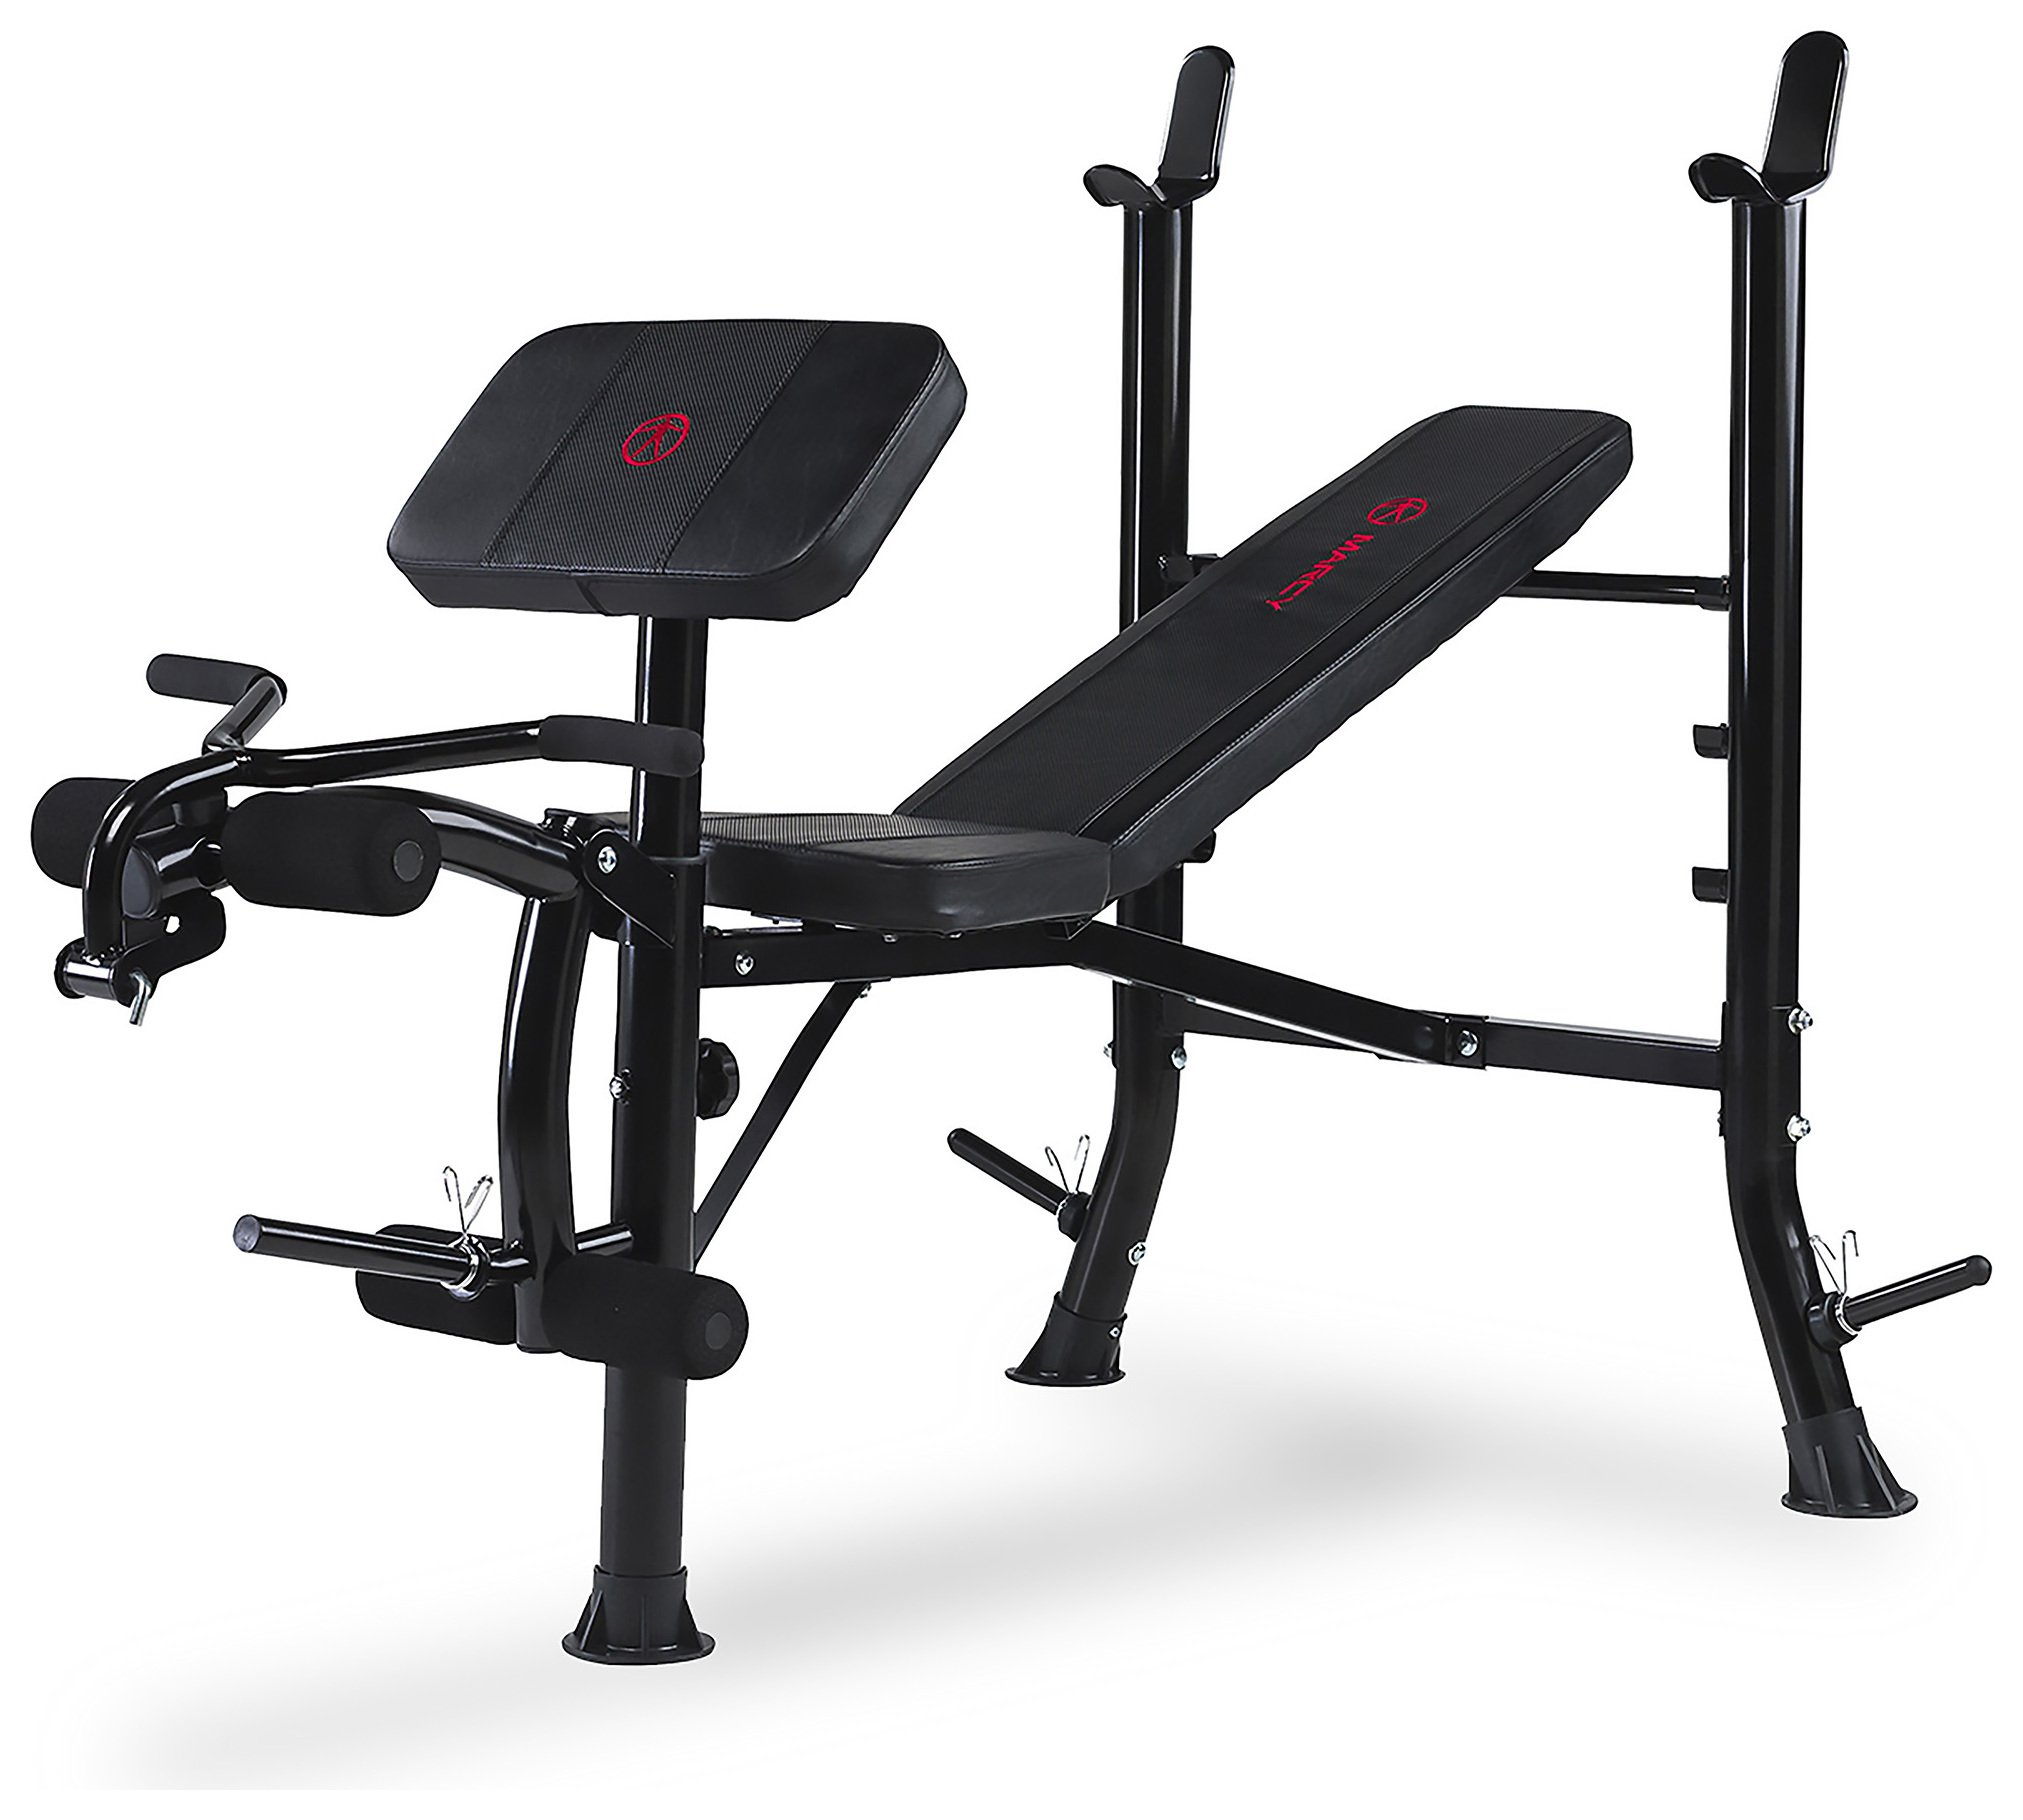 Marcy Be1000 Barbell Weight Bench Review